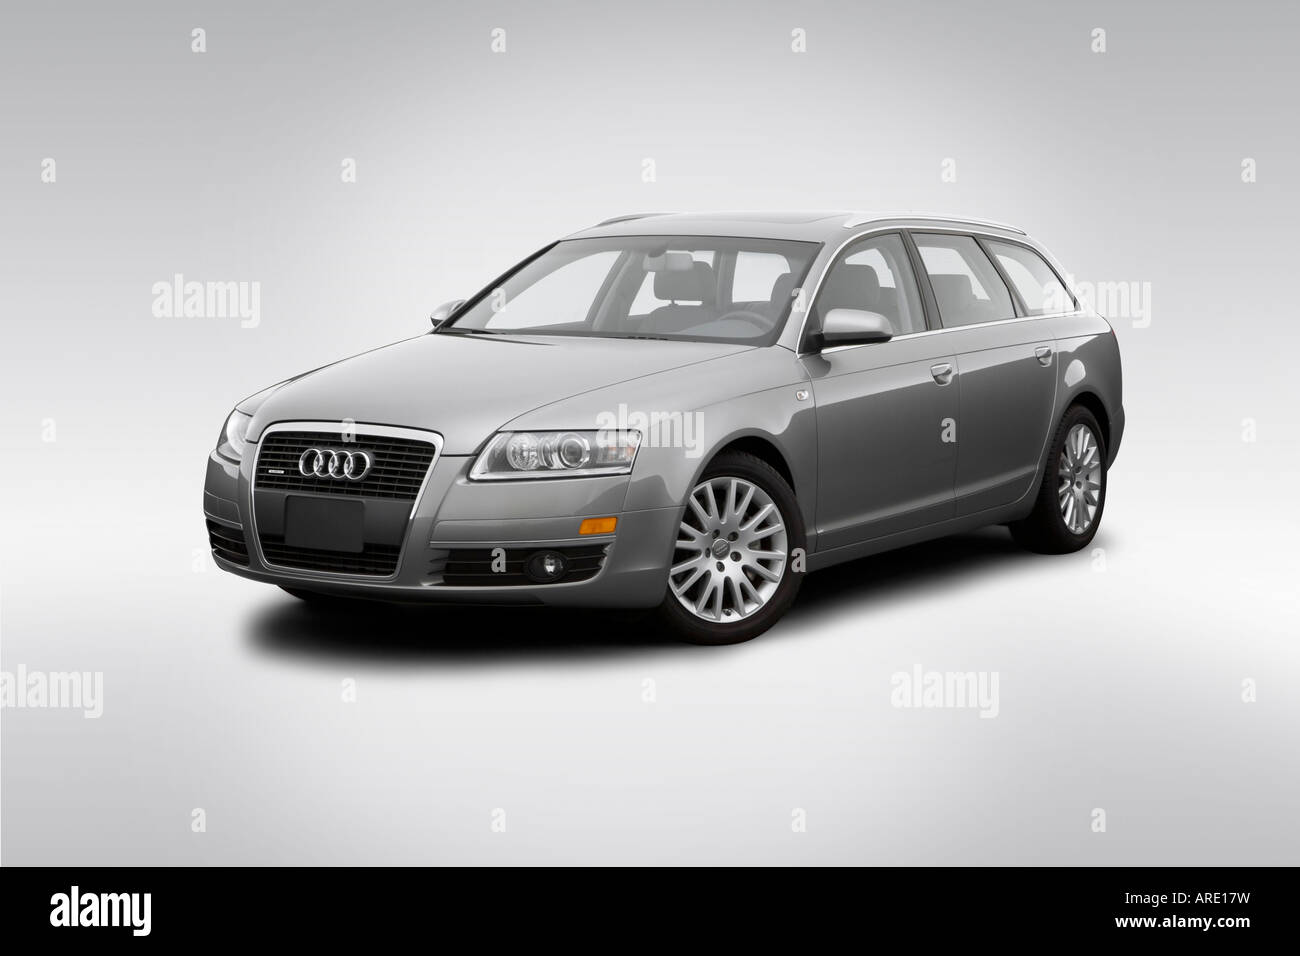 2006 Audi A6 Avant 32 Quattro In Gray Front Angle View Stock